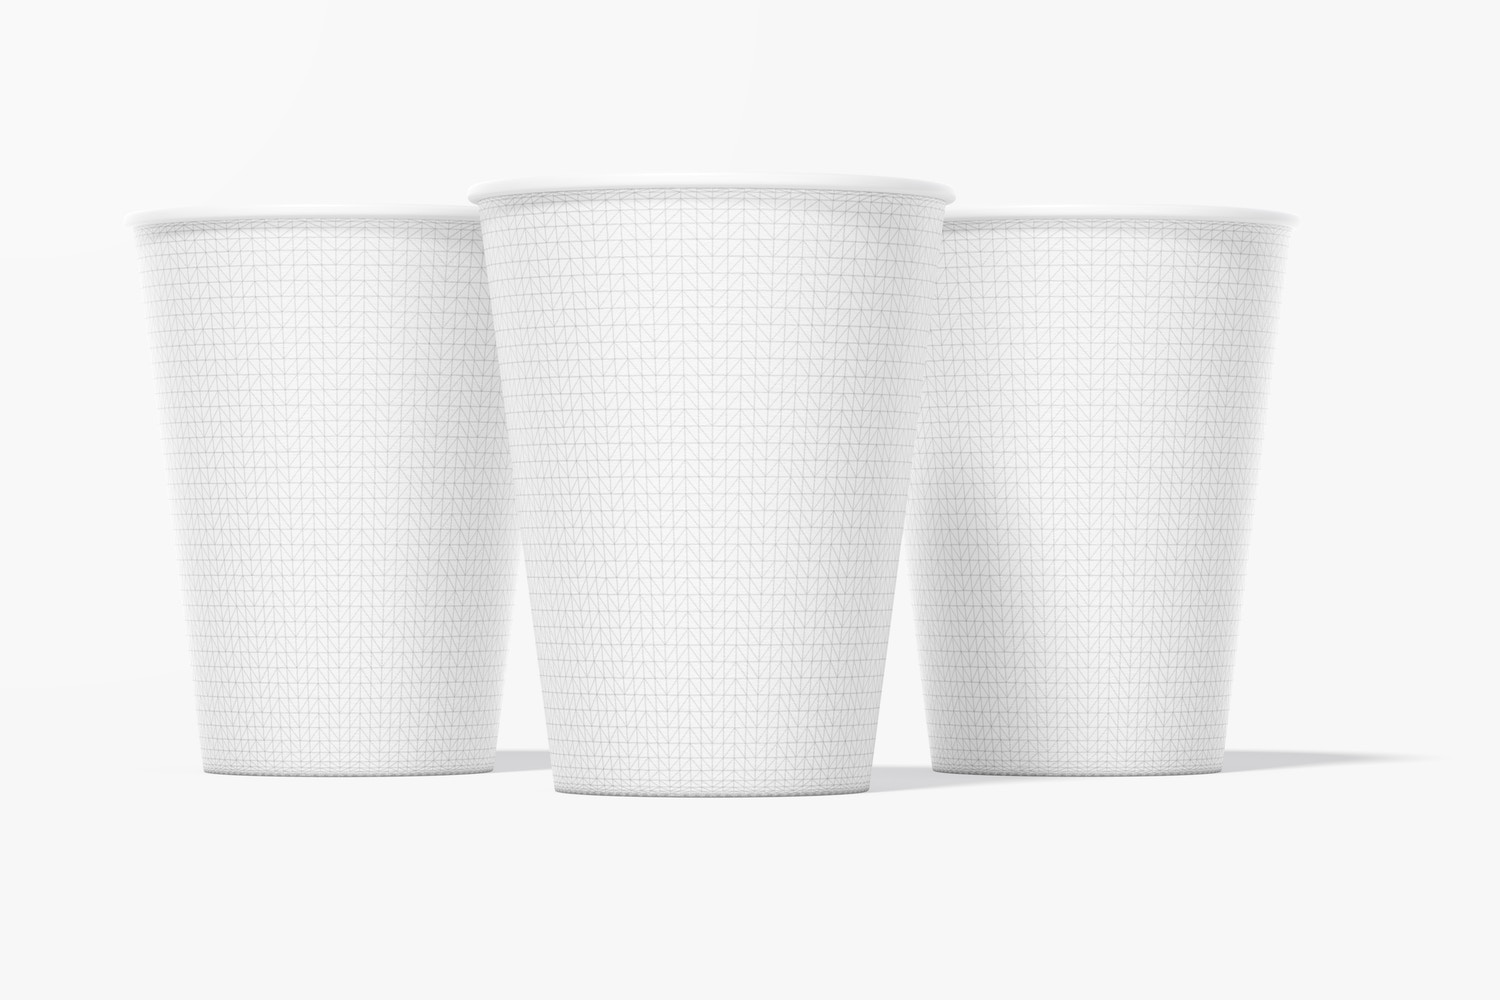 Paper Cups Mockup, Front View